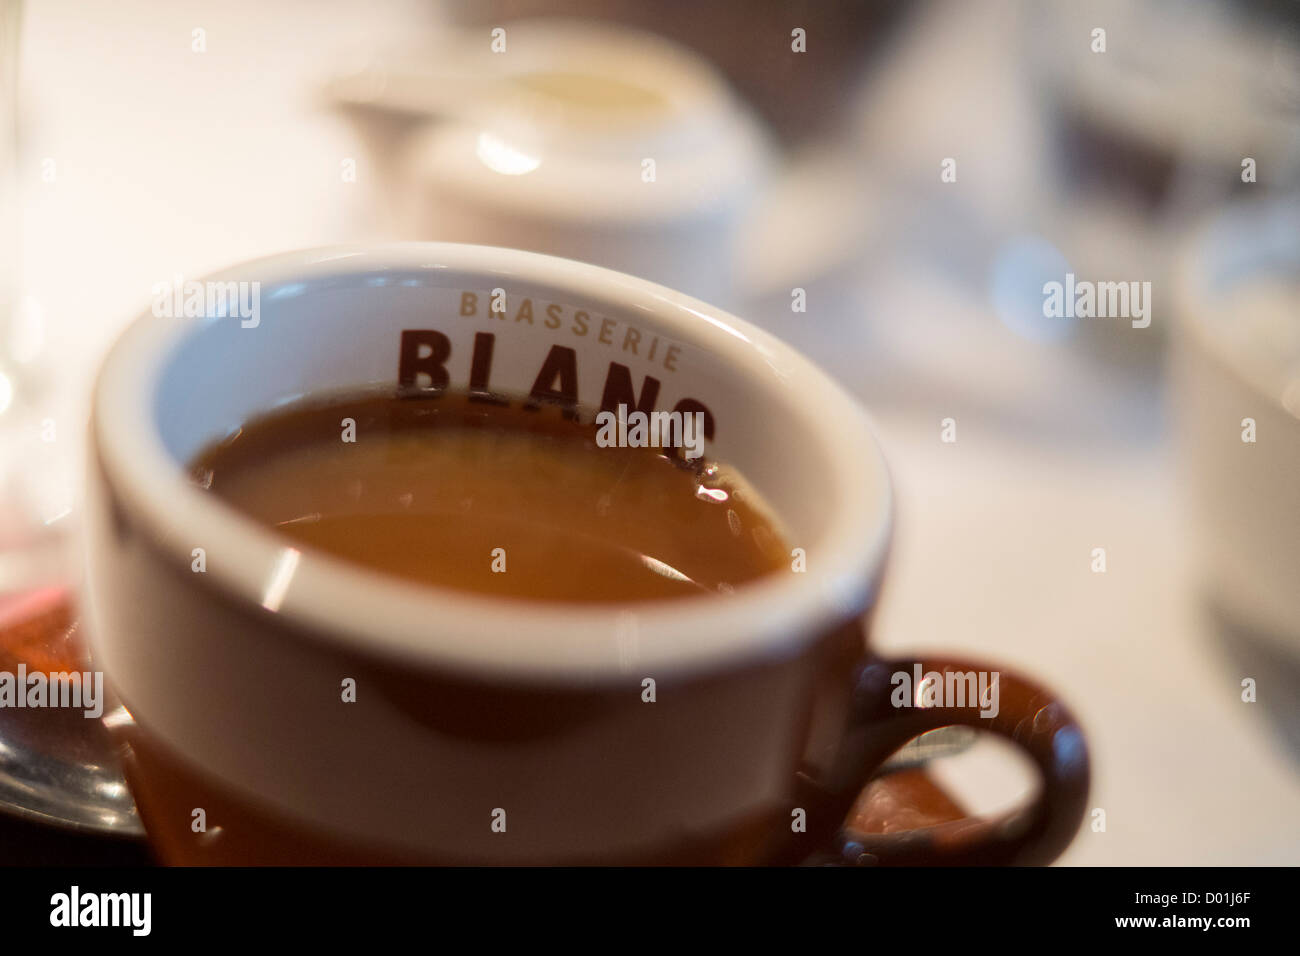 A cup of coffee in the Brasserie Blanc restaurant in Cheltenham, Gloucestershire, UK. - Stock Image